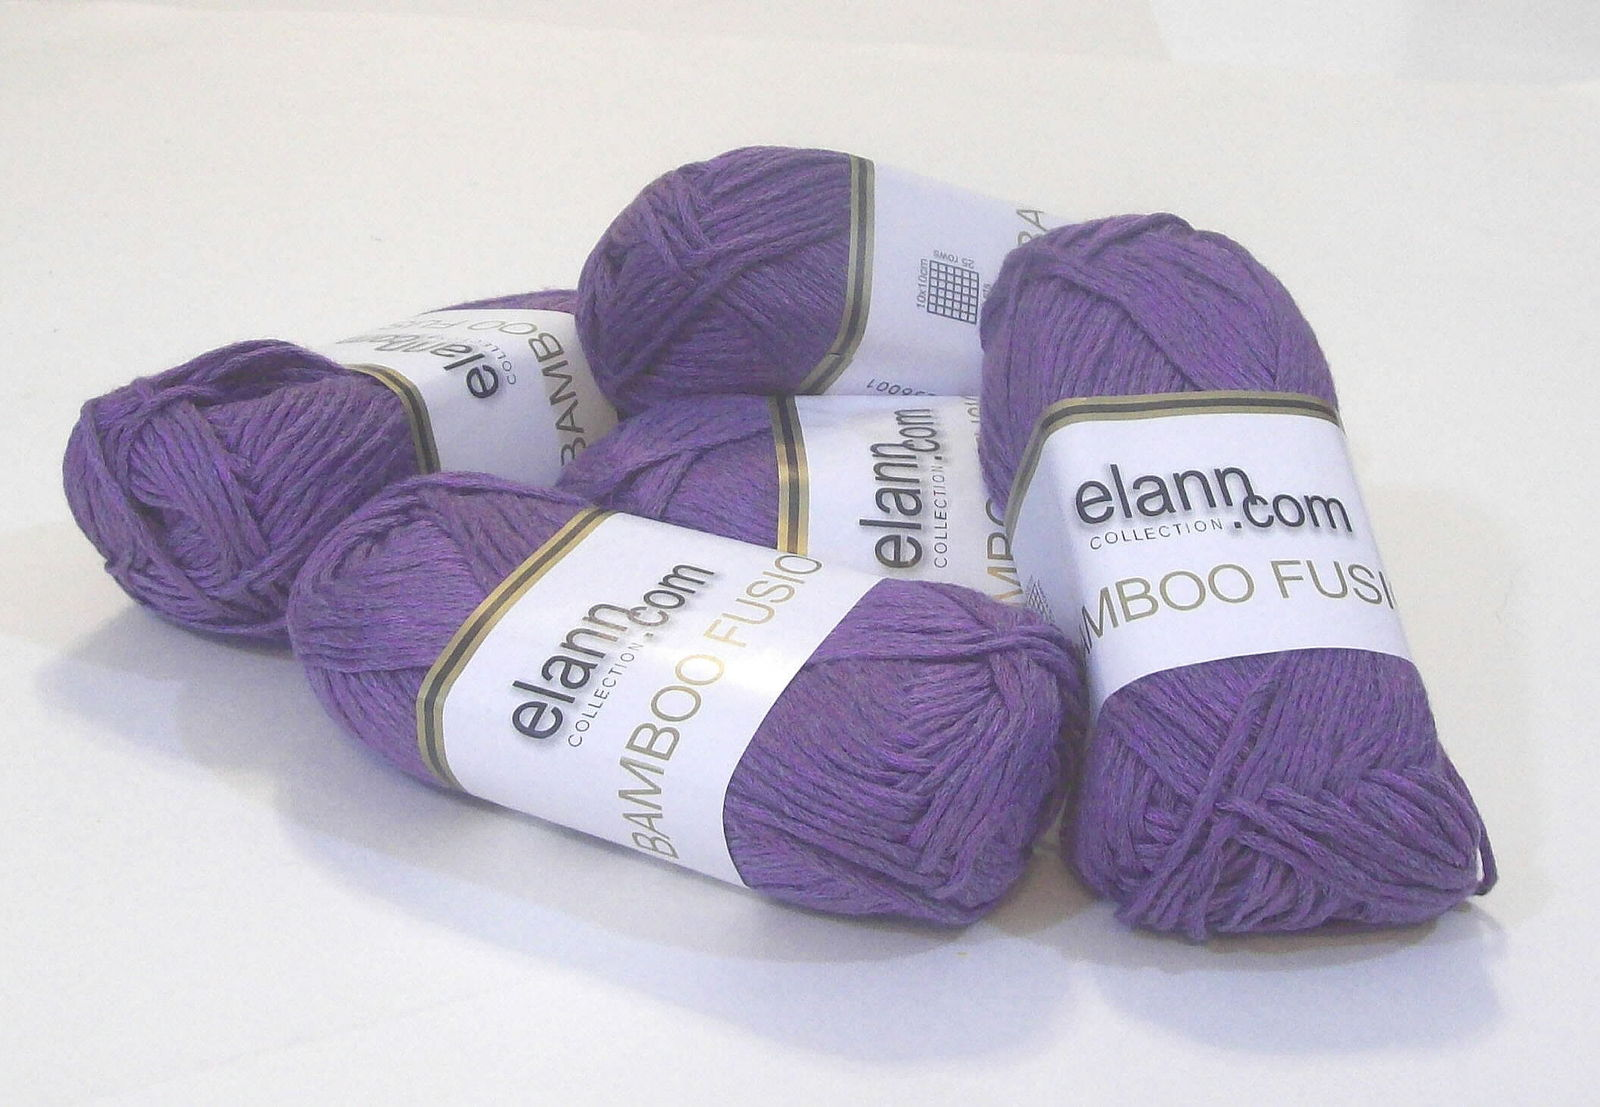 Elann Collection, Purple Color, Bamboo Fusion Yarn, Bamboo-Cotton-Acrylic Blend